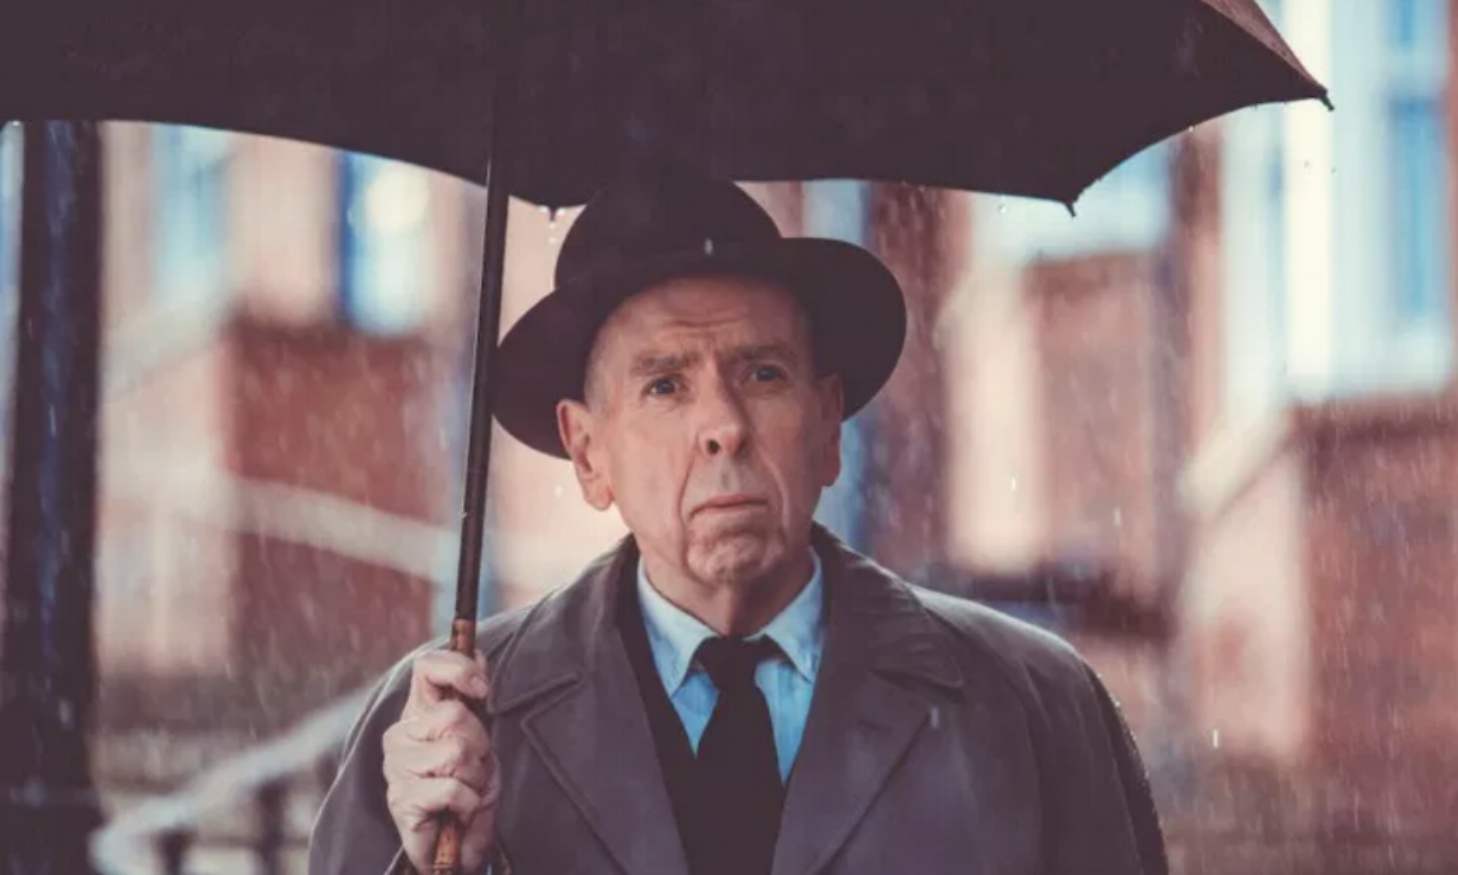 Timothy Spall as L.S. Lowry.